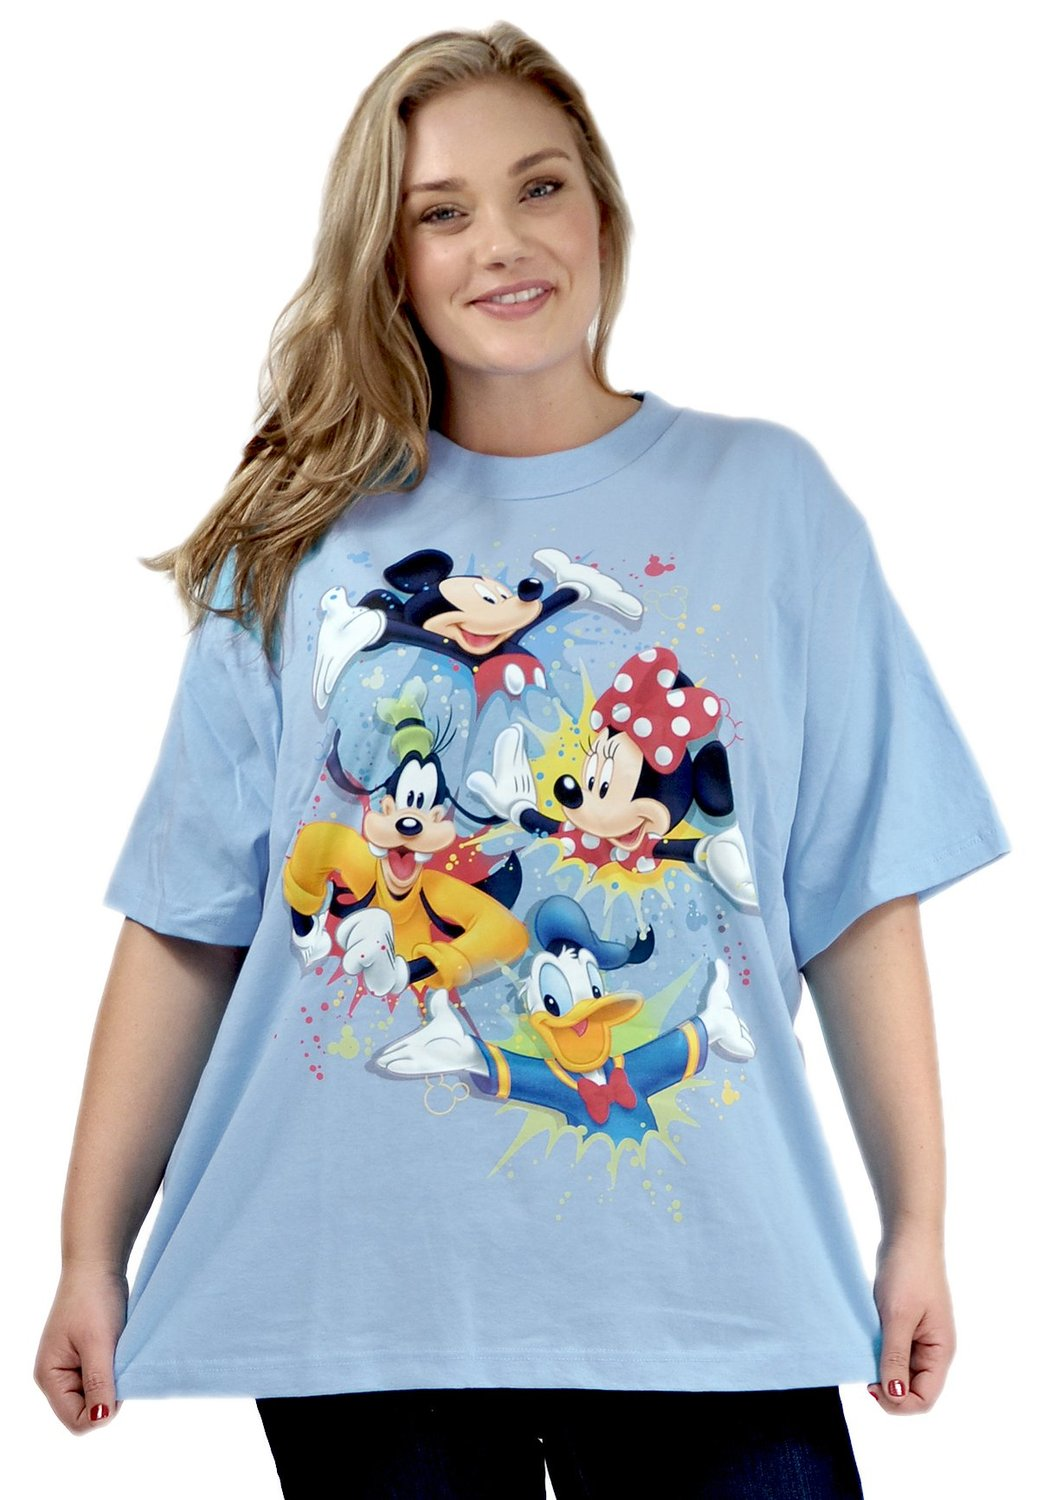 Disney Mickey Mouse Mickey Mouse Plus Size T Shirt Minnie Goofy